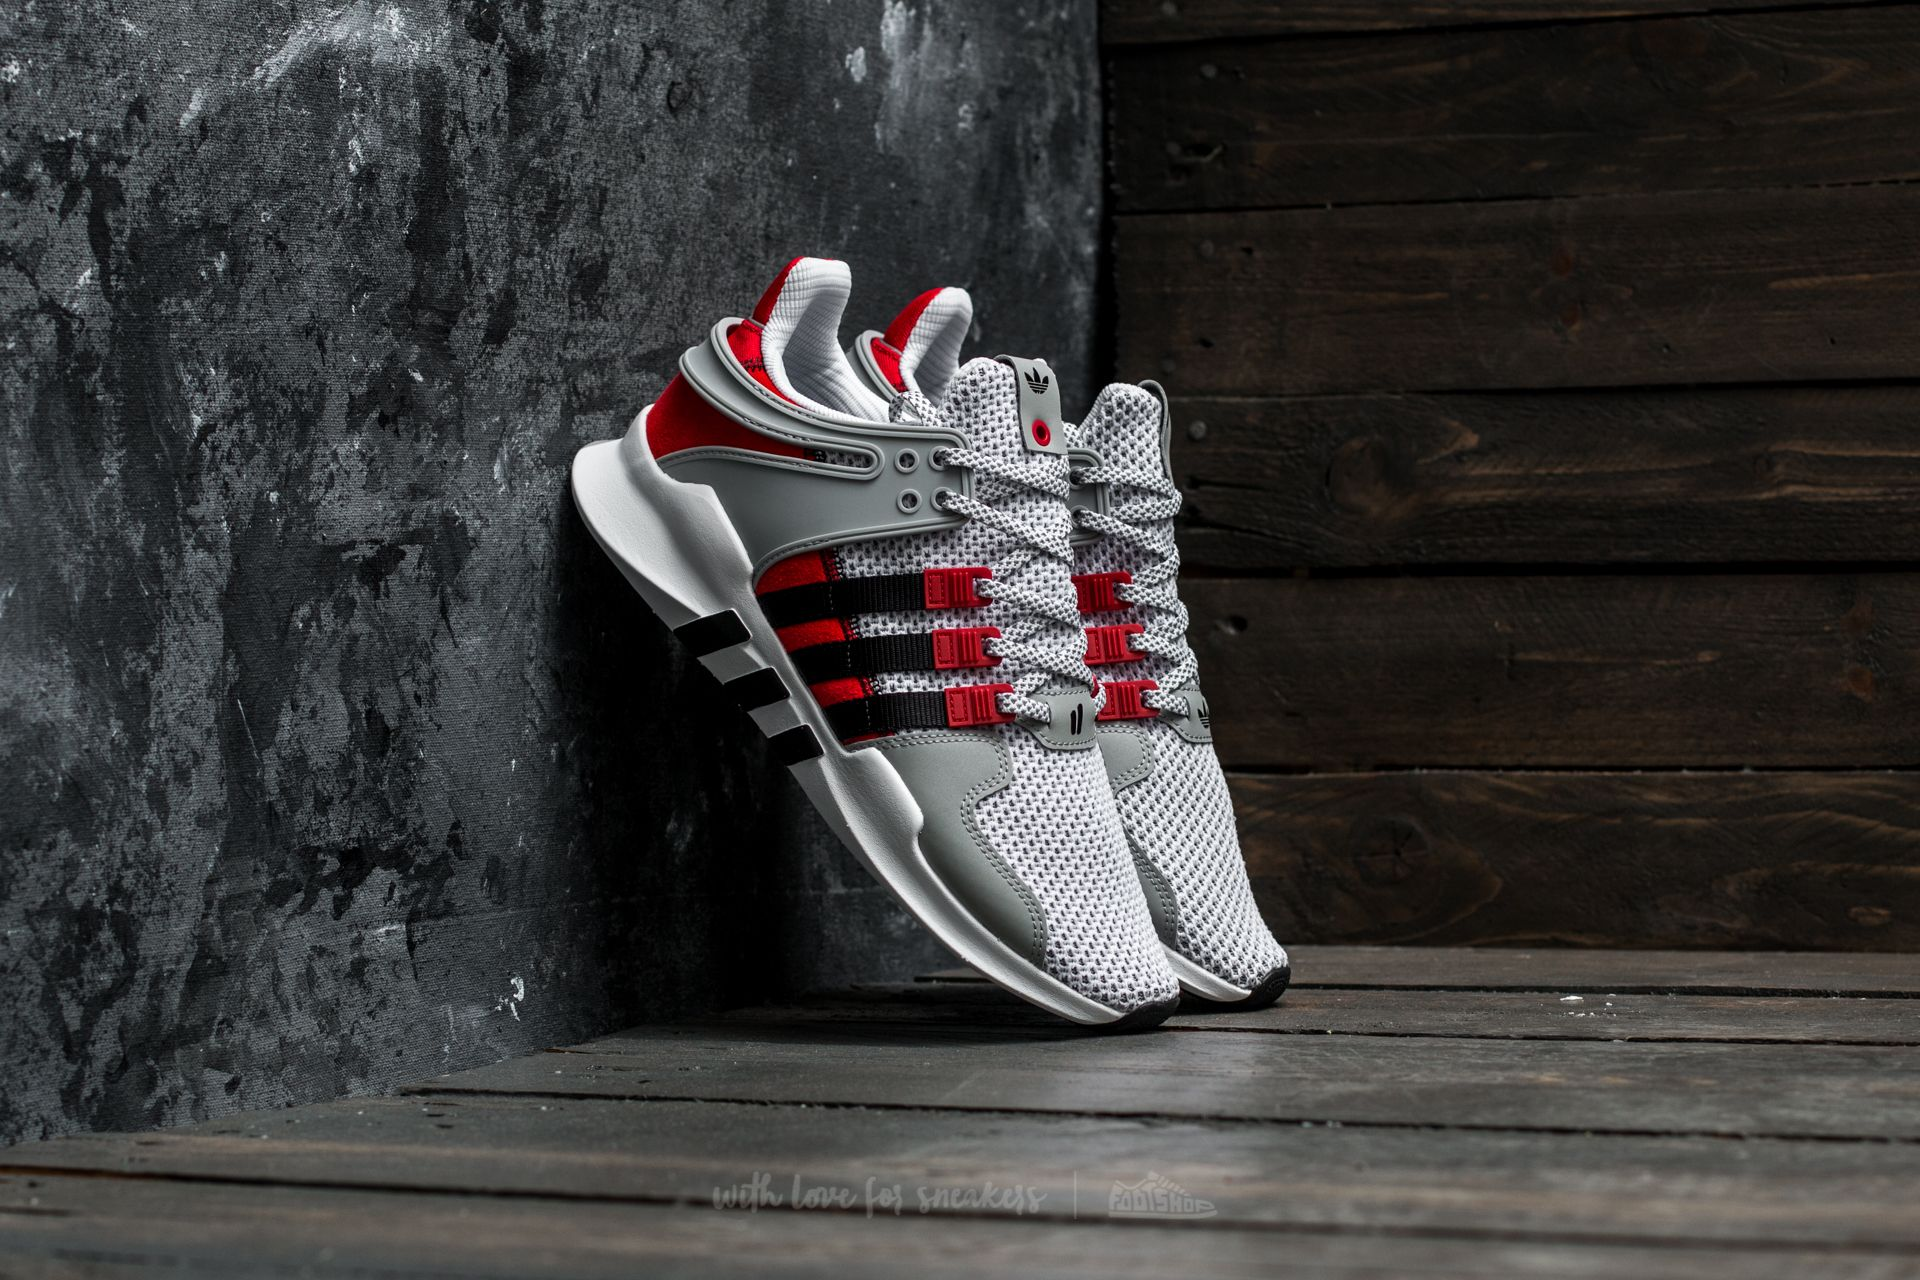 adidas x Consortium x Overkill EQT Support ADV Ftw White/ Core Black/ Clear Onix - 16743